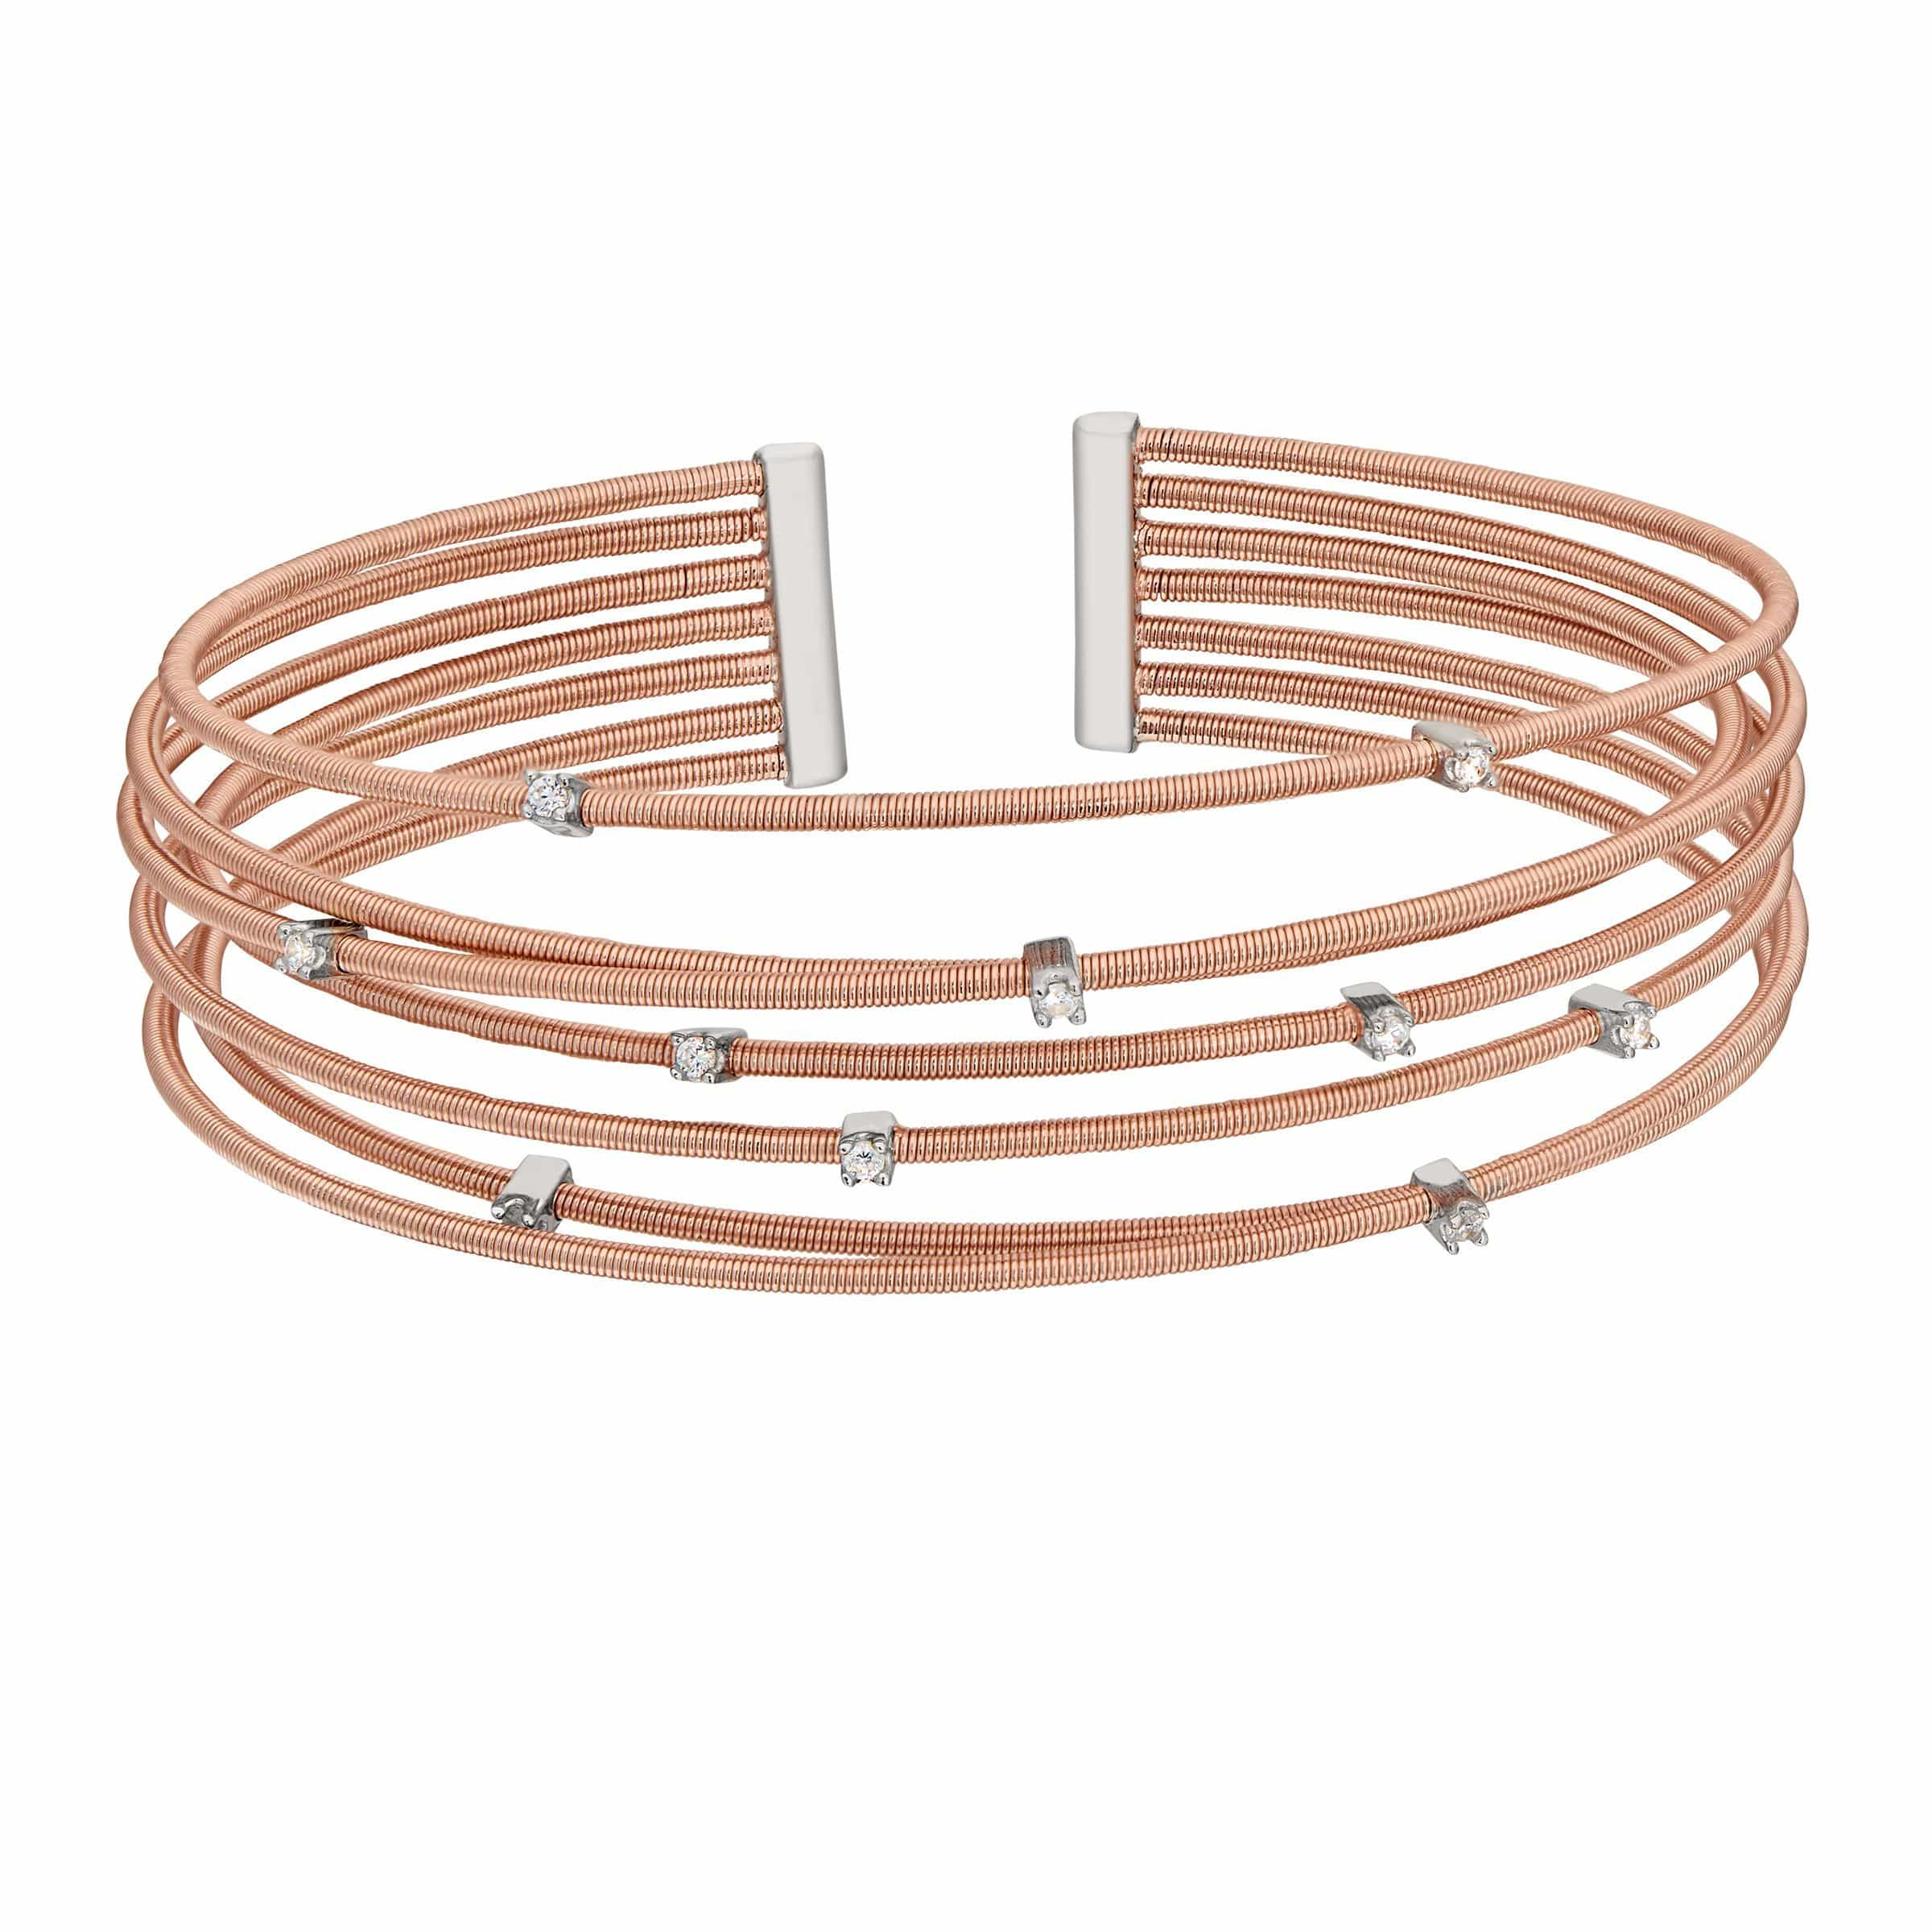 Rose Gold Finish Sterling Silver Multi Cable Cuff Bracelet - LL7017B-RG/RH-Kelly Waters-Renee Taylor Gallery